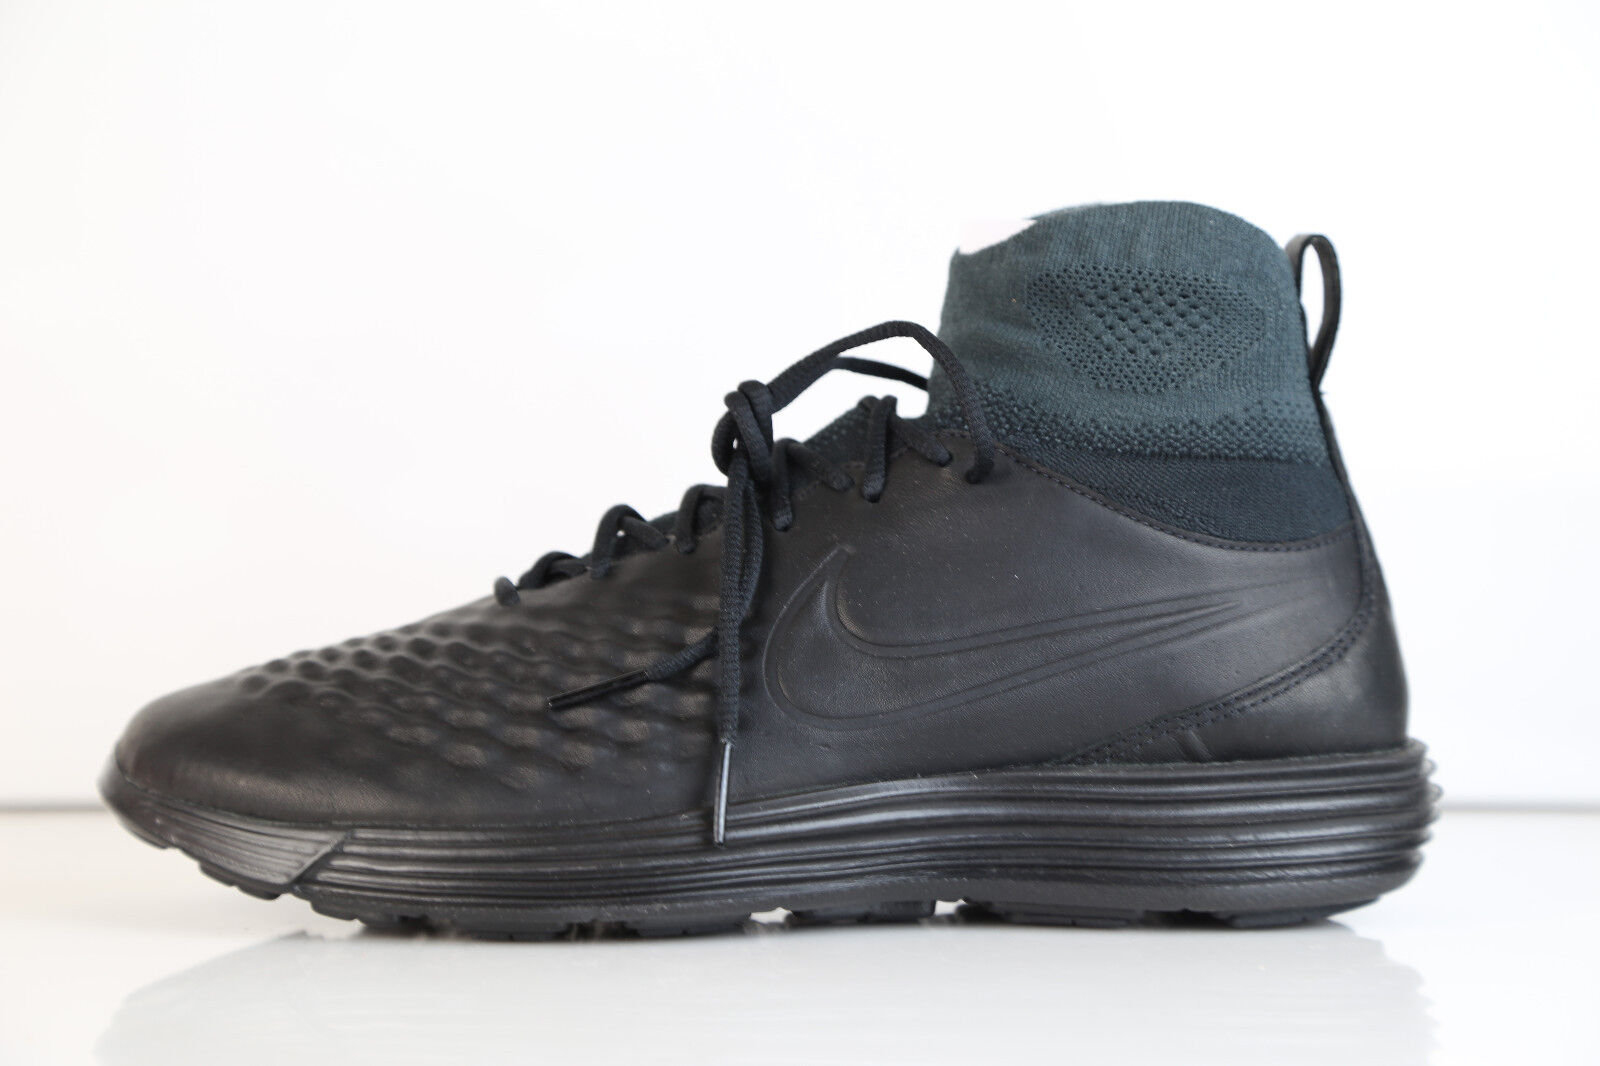 Nike Lunar Magista II FK Black Anthracite 852614-001 8-12 free one premium